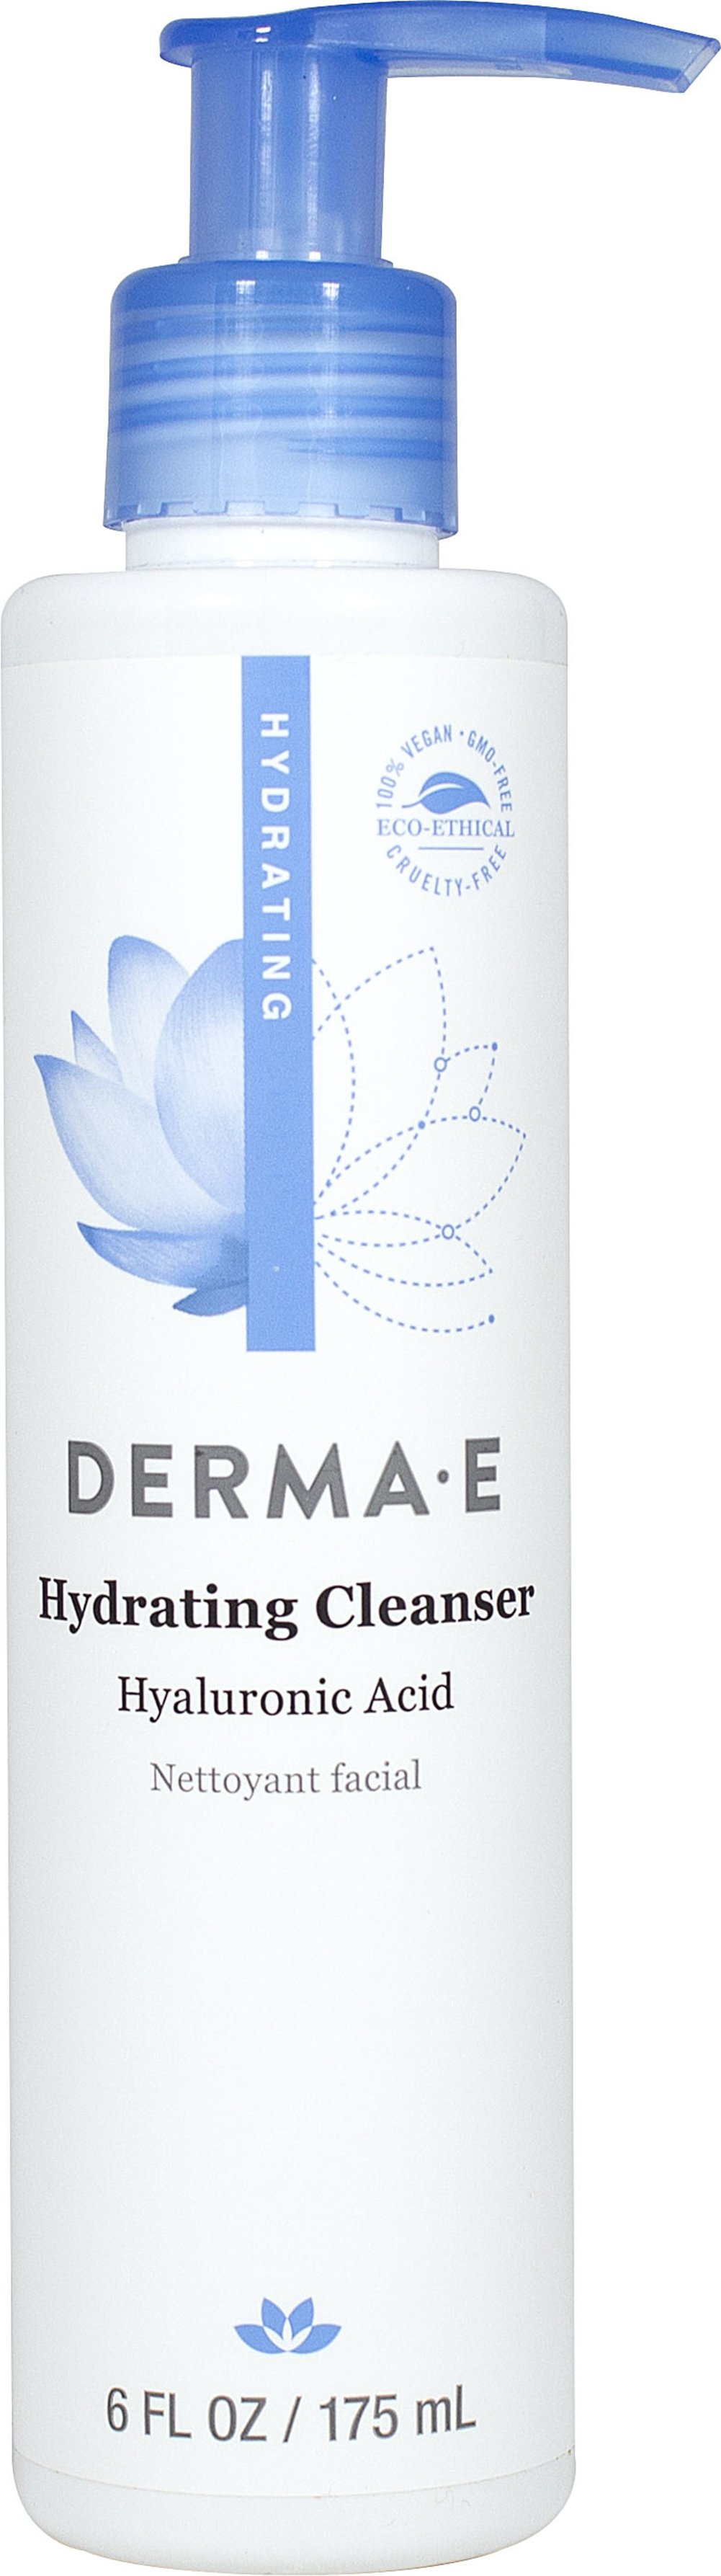 Derma E® Hydrating Cleanser with Hyaluronic Acid <strong></strong><p><strong>From the Manufacturer:</strong></p><p><strong>Cleanse and Rehydrate</strong></p><p>Derma E®'s Hydrating Cleanser is formulated with the maximum hydrating properties of Hyaluronic Acid, plus skin vitamins and botanicals such as Chamomile and Lemon Grass to deeply moisturize while rinsing away dirt and impurities for clean, soft, dewy-fresh skin.&